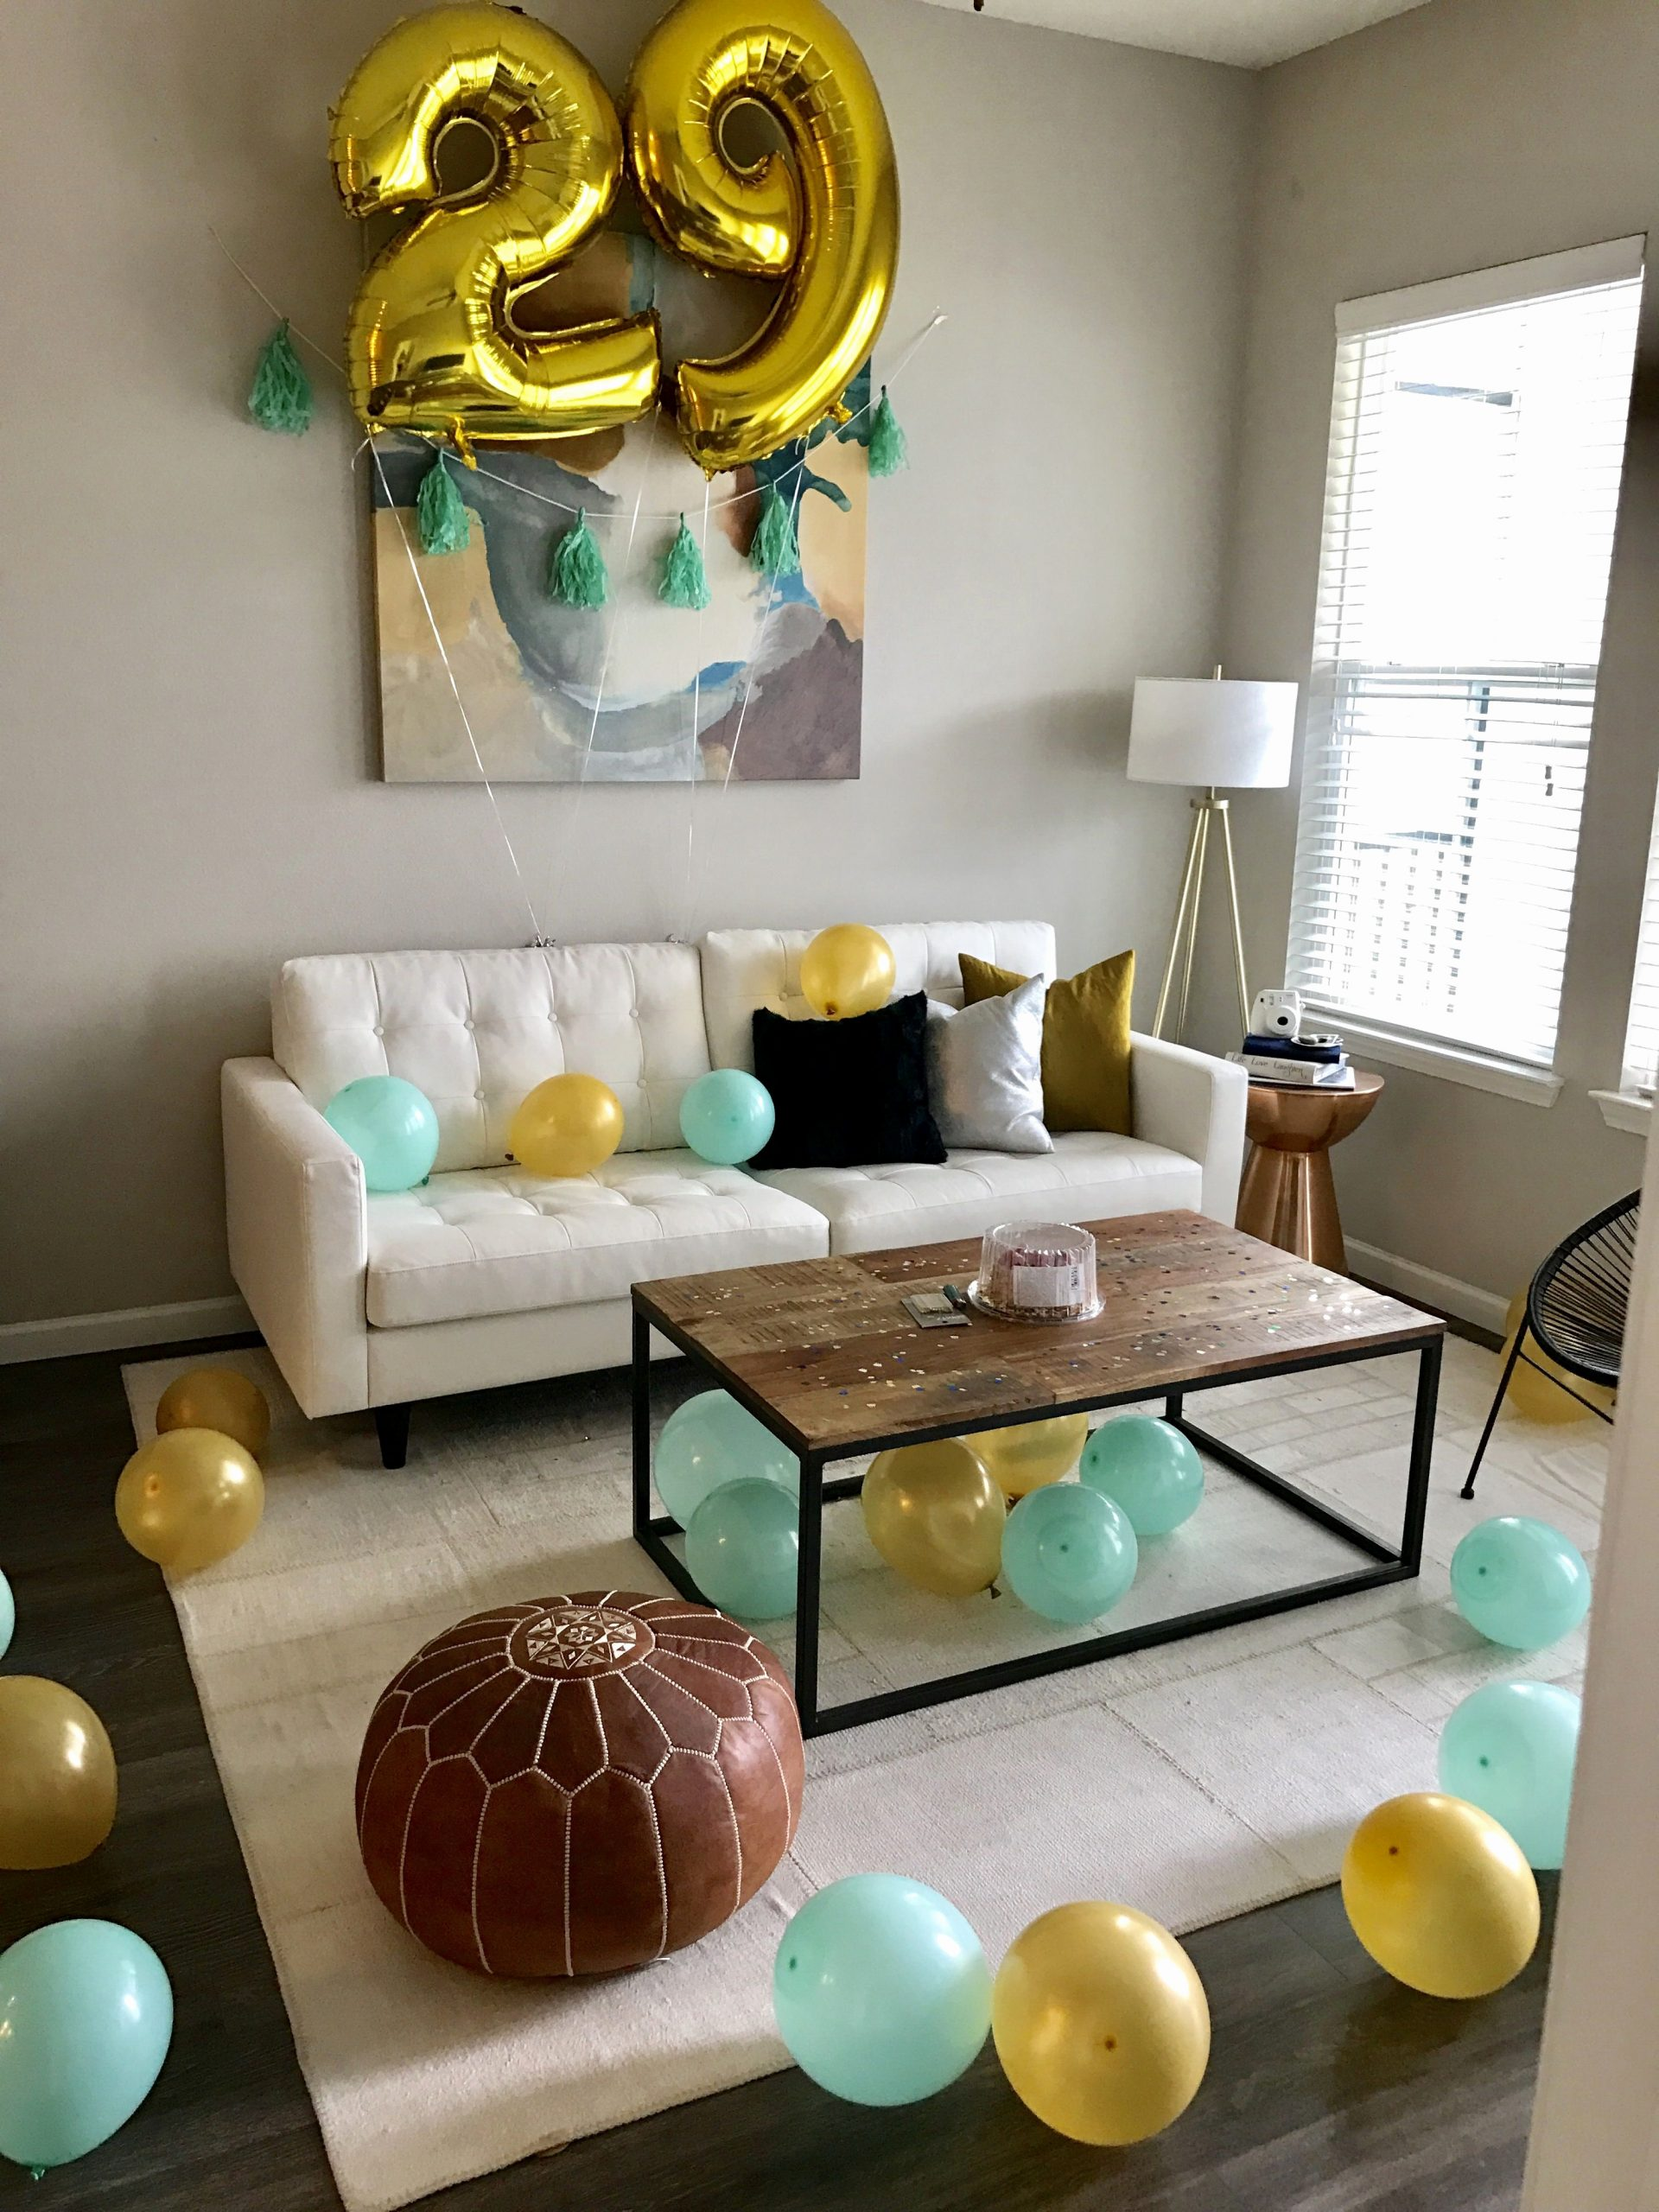 Birthday Decoration Ideas for Living Room Inspirational Birthday Surprise for Him